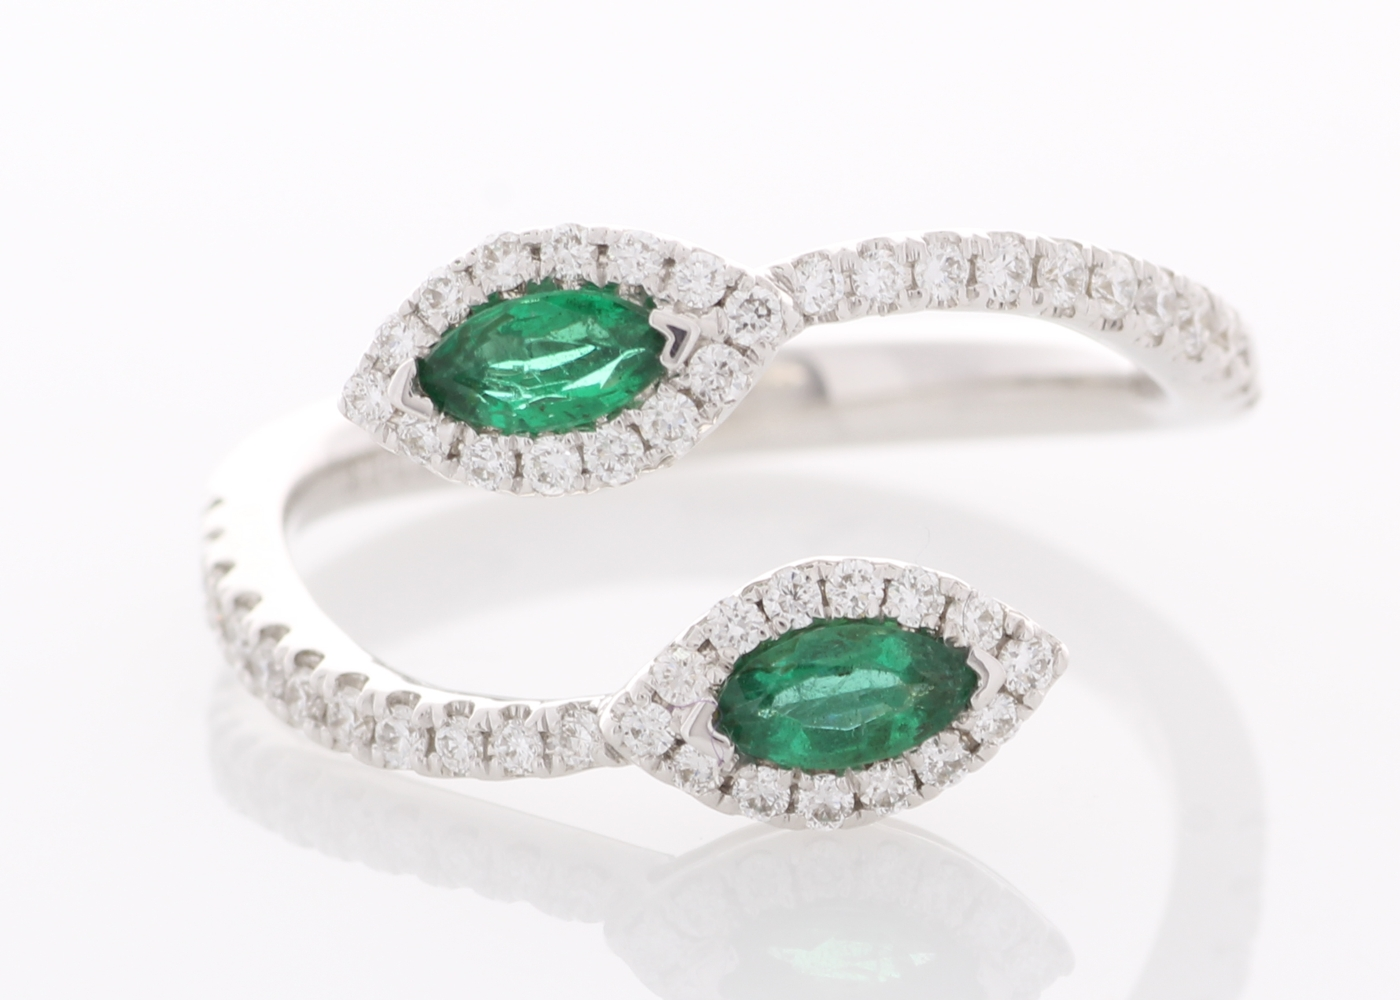 Lot 54 - 18ct White Gold Two Stone Halo Set Diamond And Emerald Ring 0.30ct (0.27ct Emeralds)